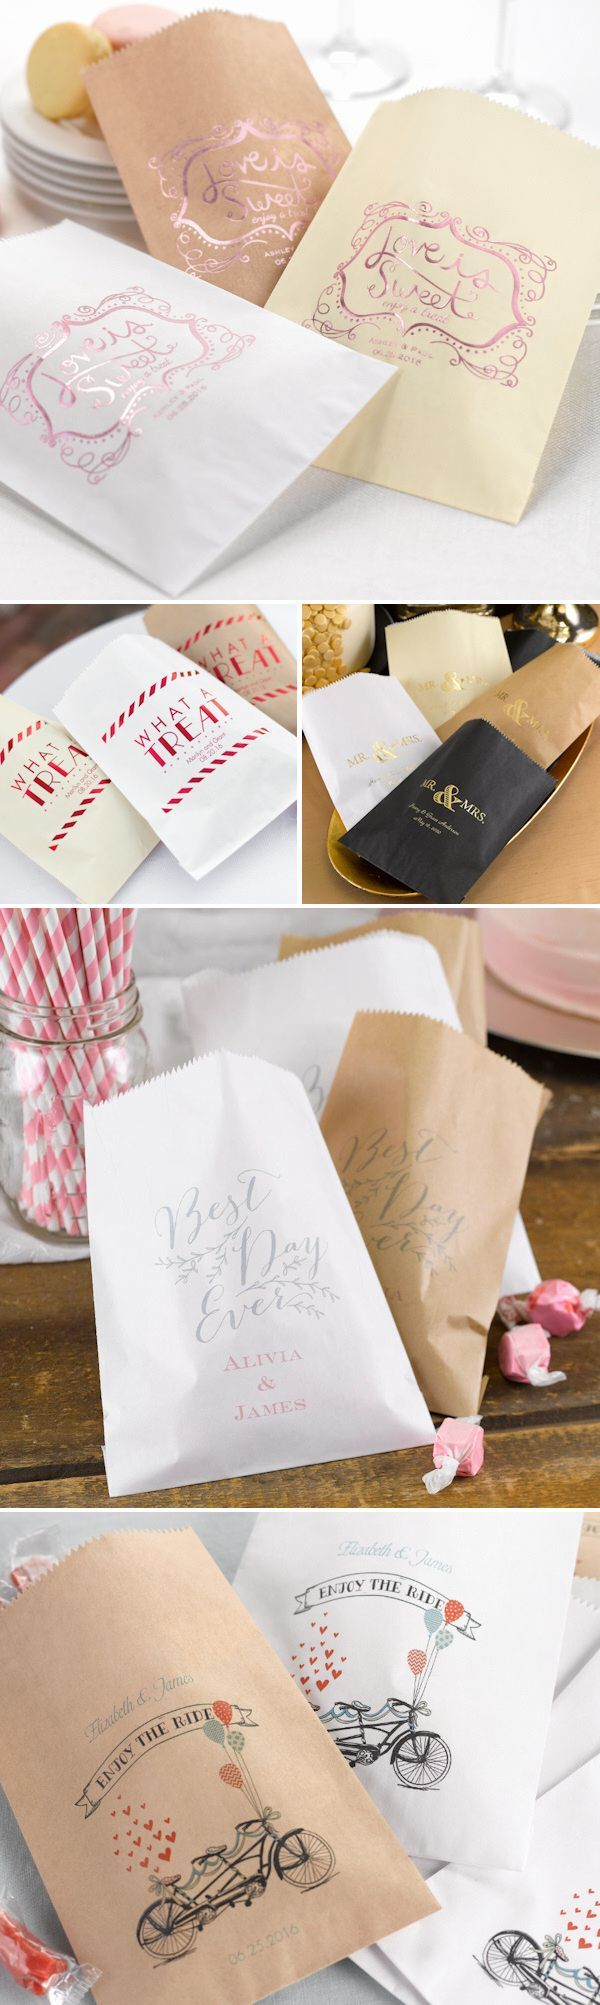 Having a candy or dessert buffet at your wedding?  Check out these fun, stylish and personalized goodie treat bags!